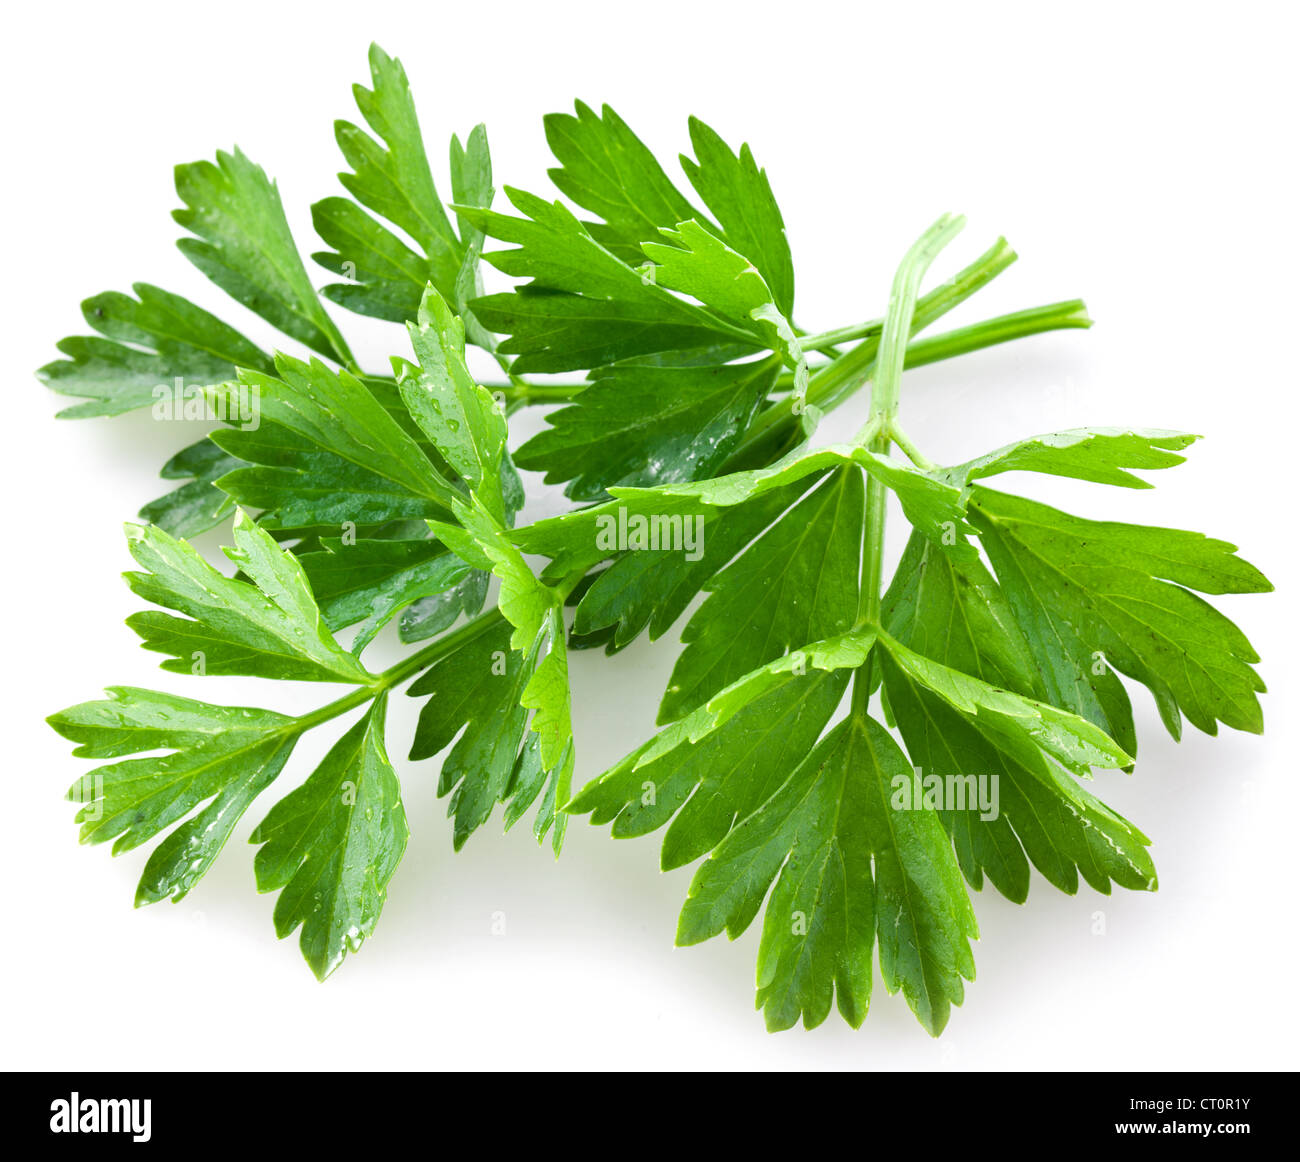 Bunch of green coriander on a white background. - Stock Image